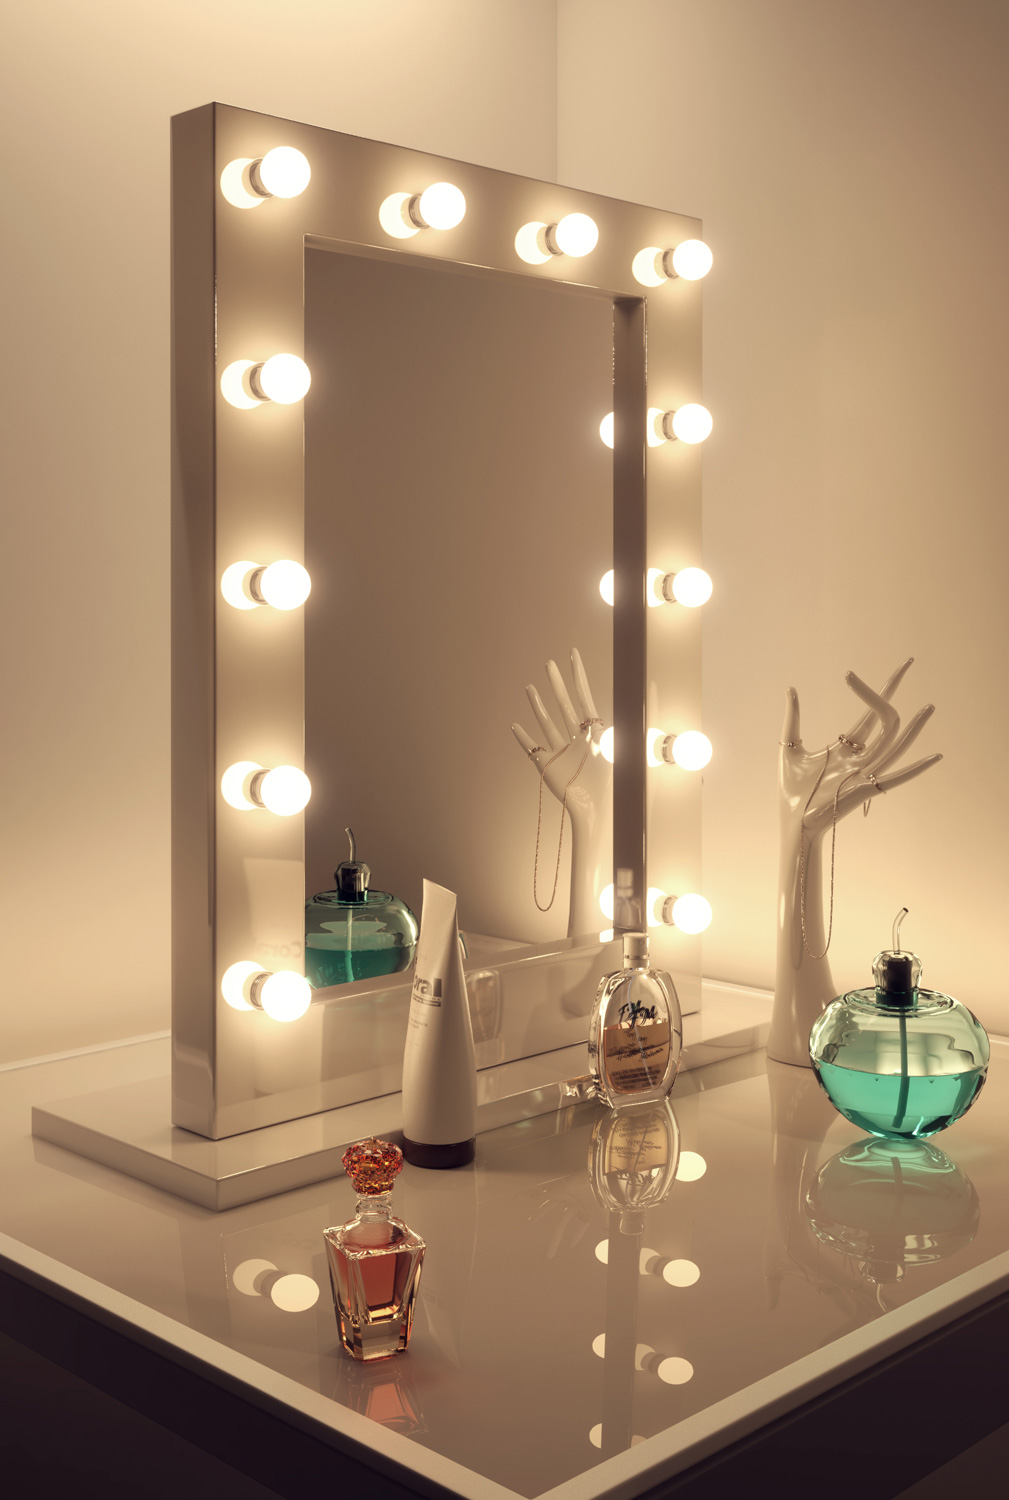 Diamond x gloss white hollywood makeup mirror daylight for Miroir pour coiffeuse ikea